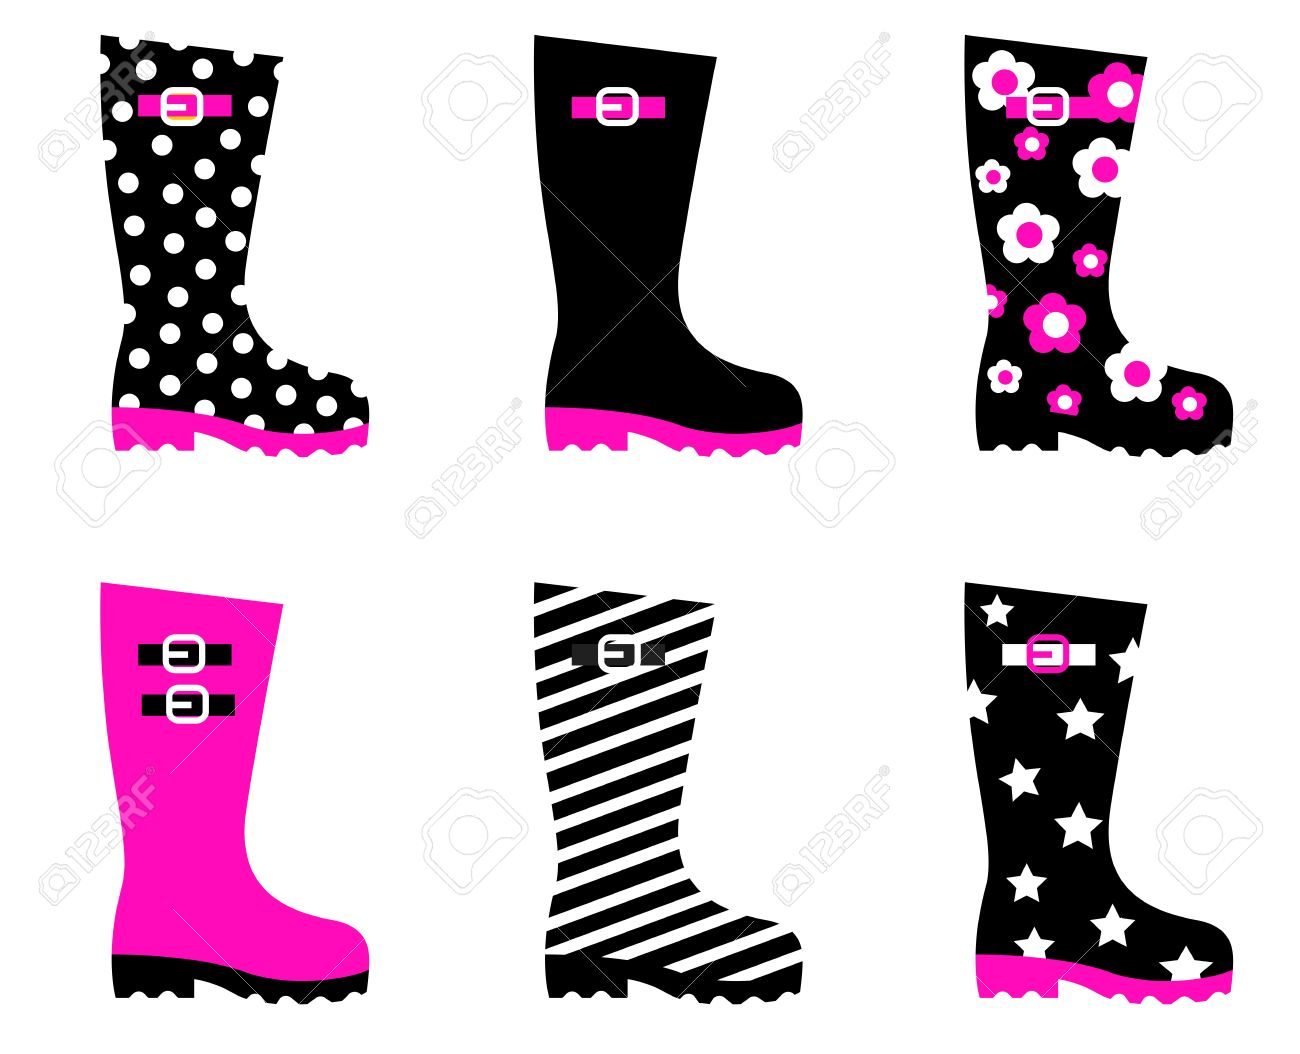 Boots fashion pic boots clip art - Fashion Accessories Boots Collection Isolated On White Vector Collection Stock Vector 10918367